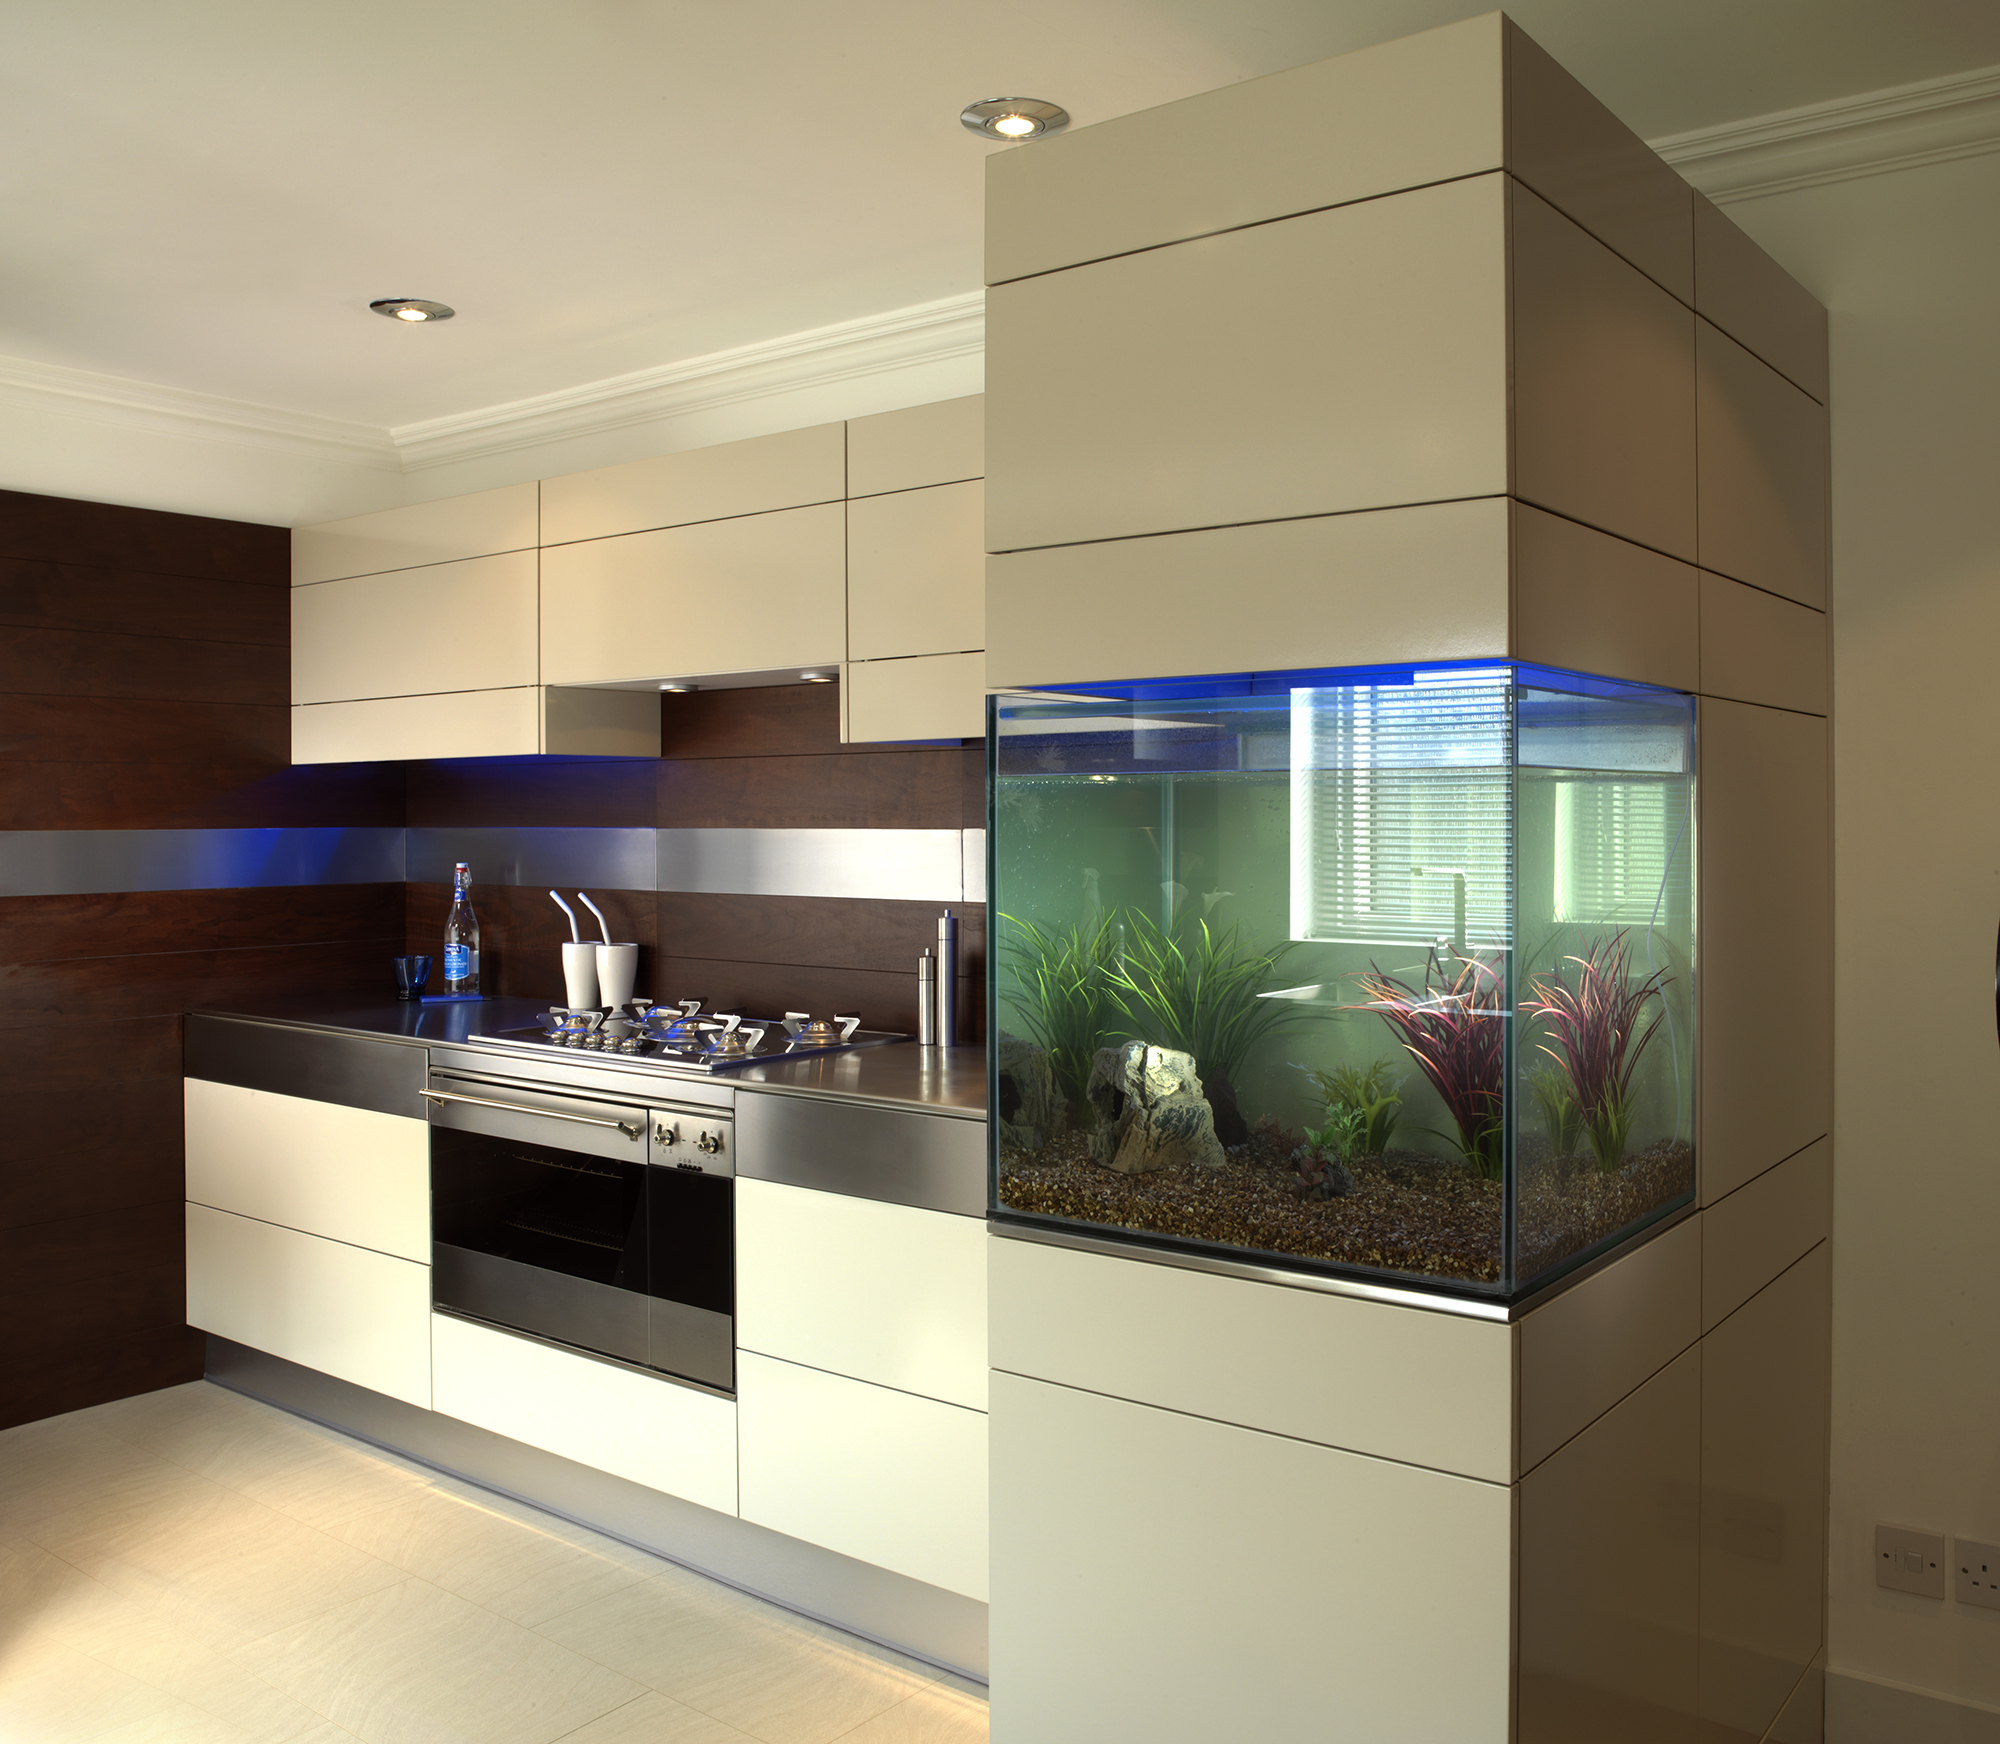 Bespoke luxury kitchen designs designer kitchens for Modern kitchen units designs